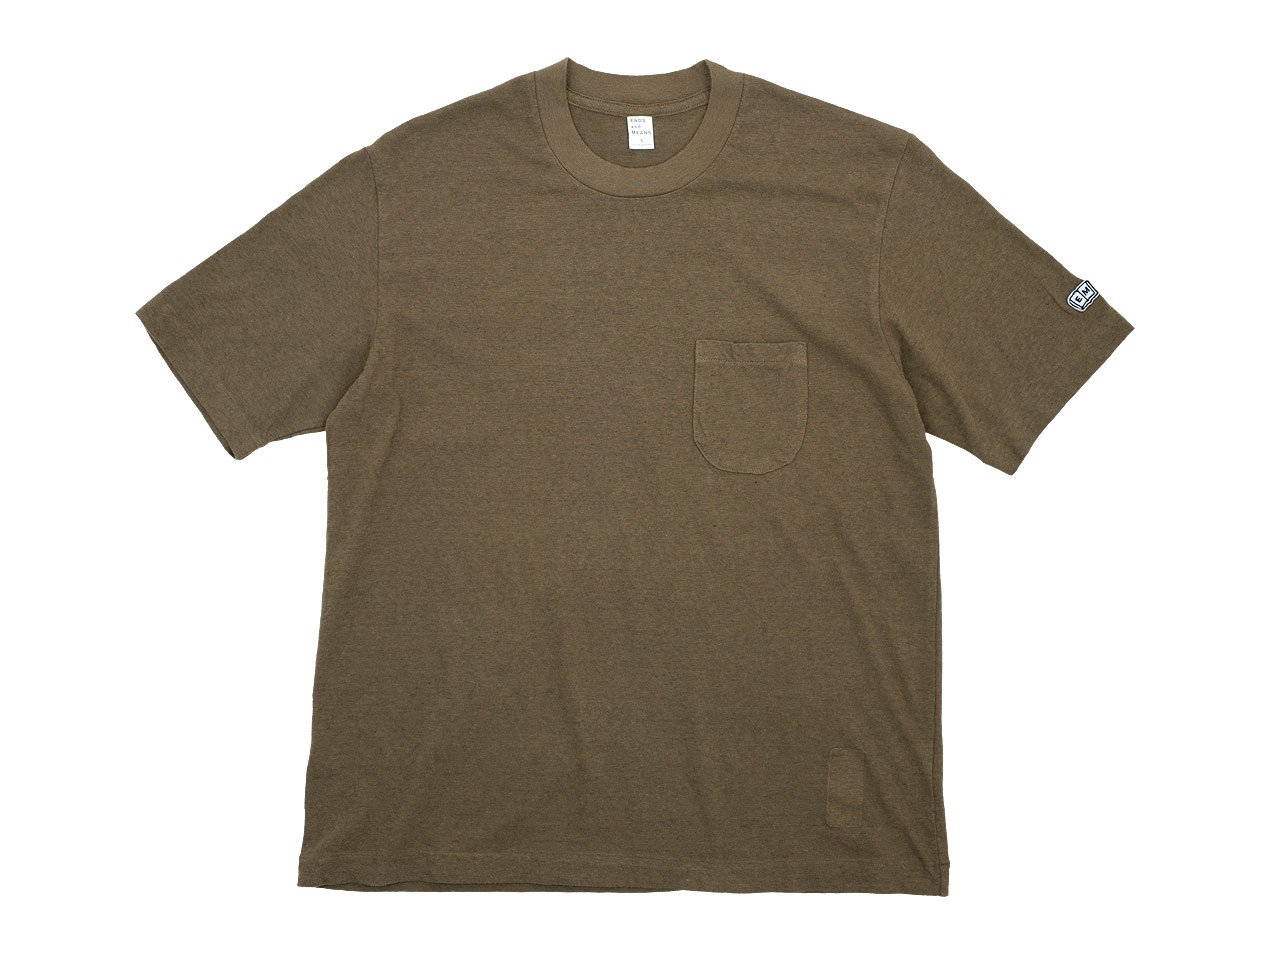 ENDS and MEANS Pocket Tee BROWN